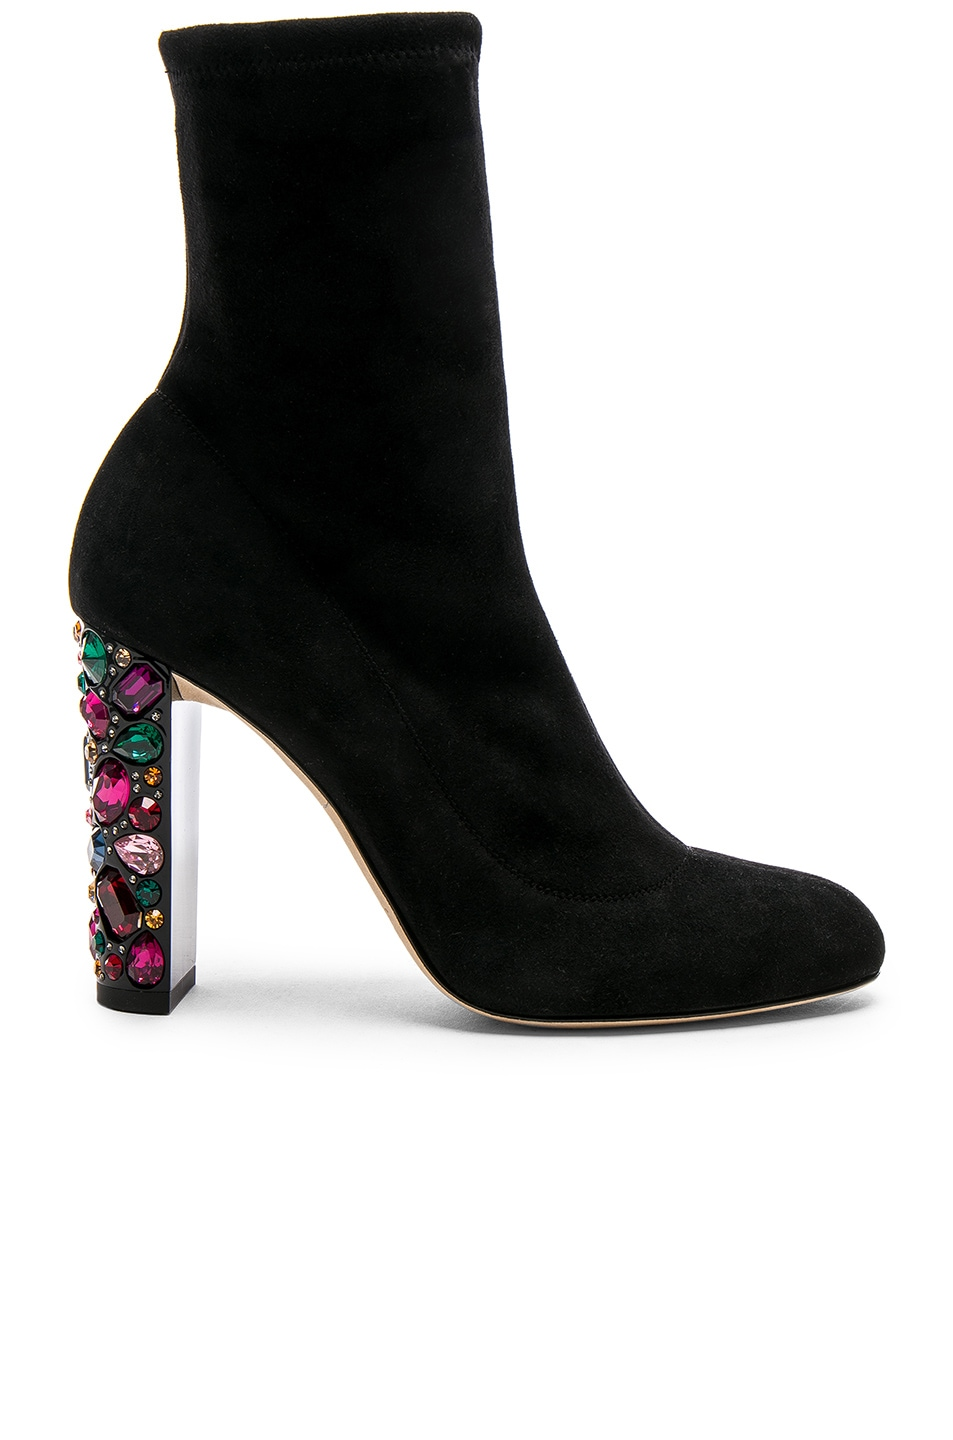 Jimmy chooMaine Embellished Boots